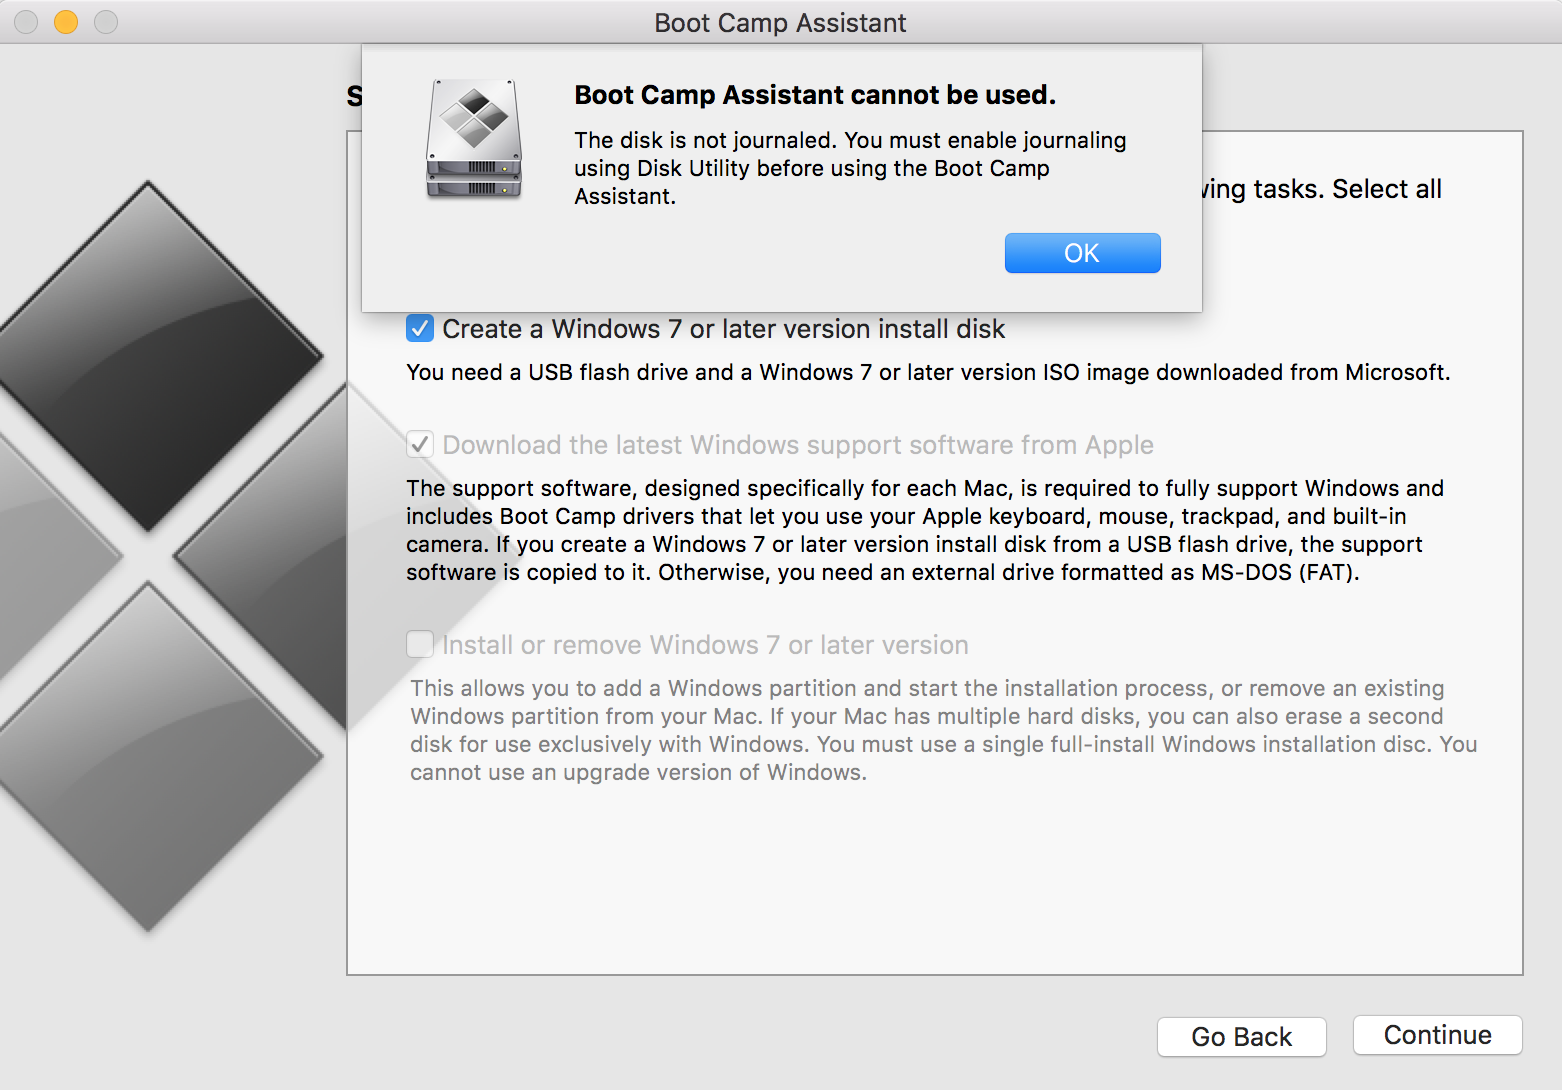 Boot Camp cannot be used - disk is not jo… - Apple Community